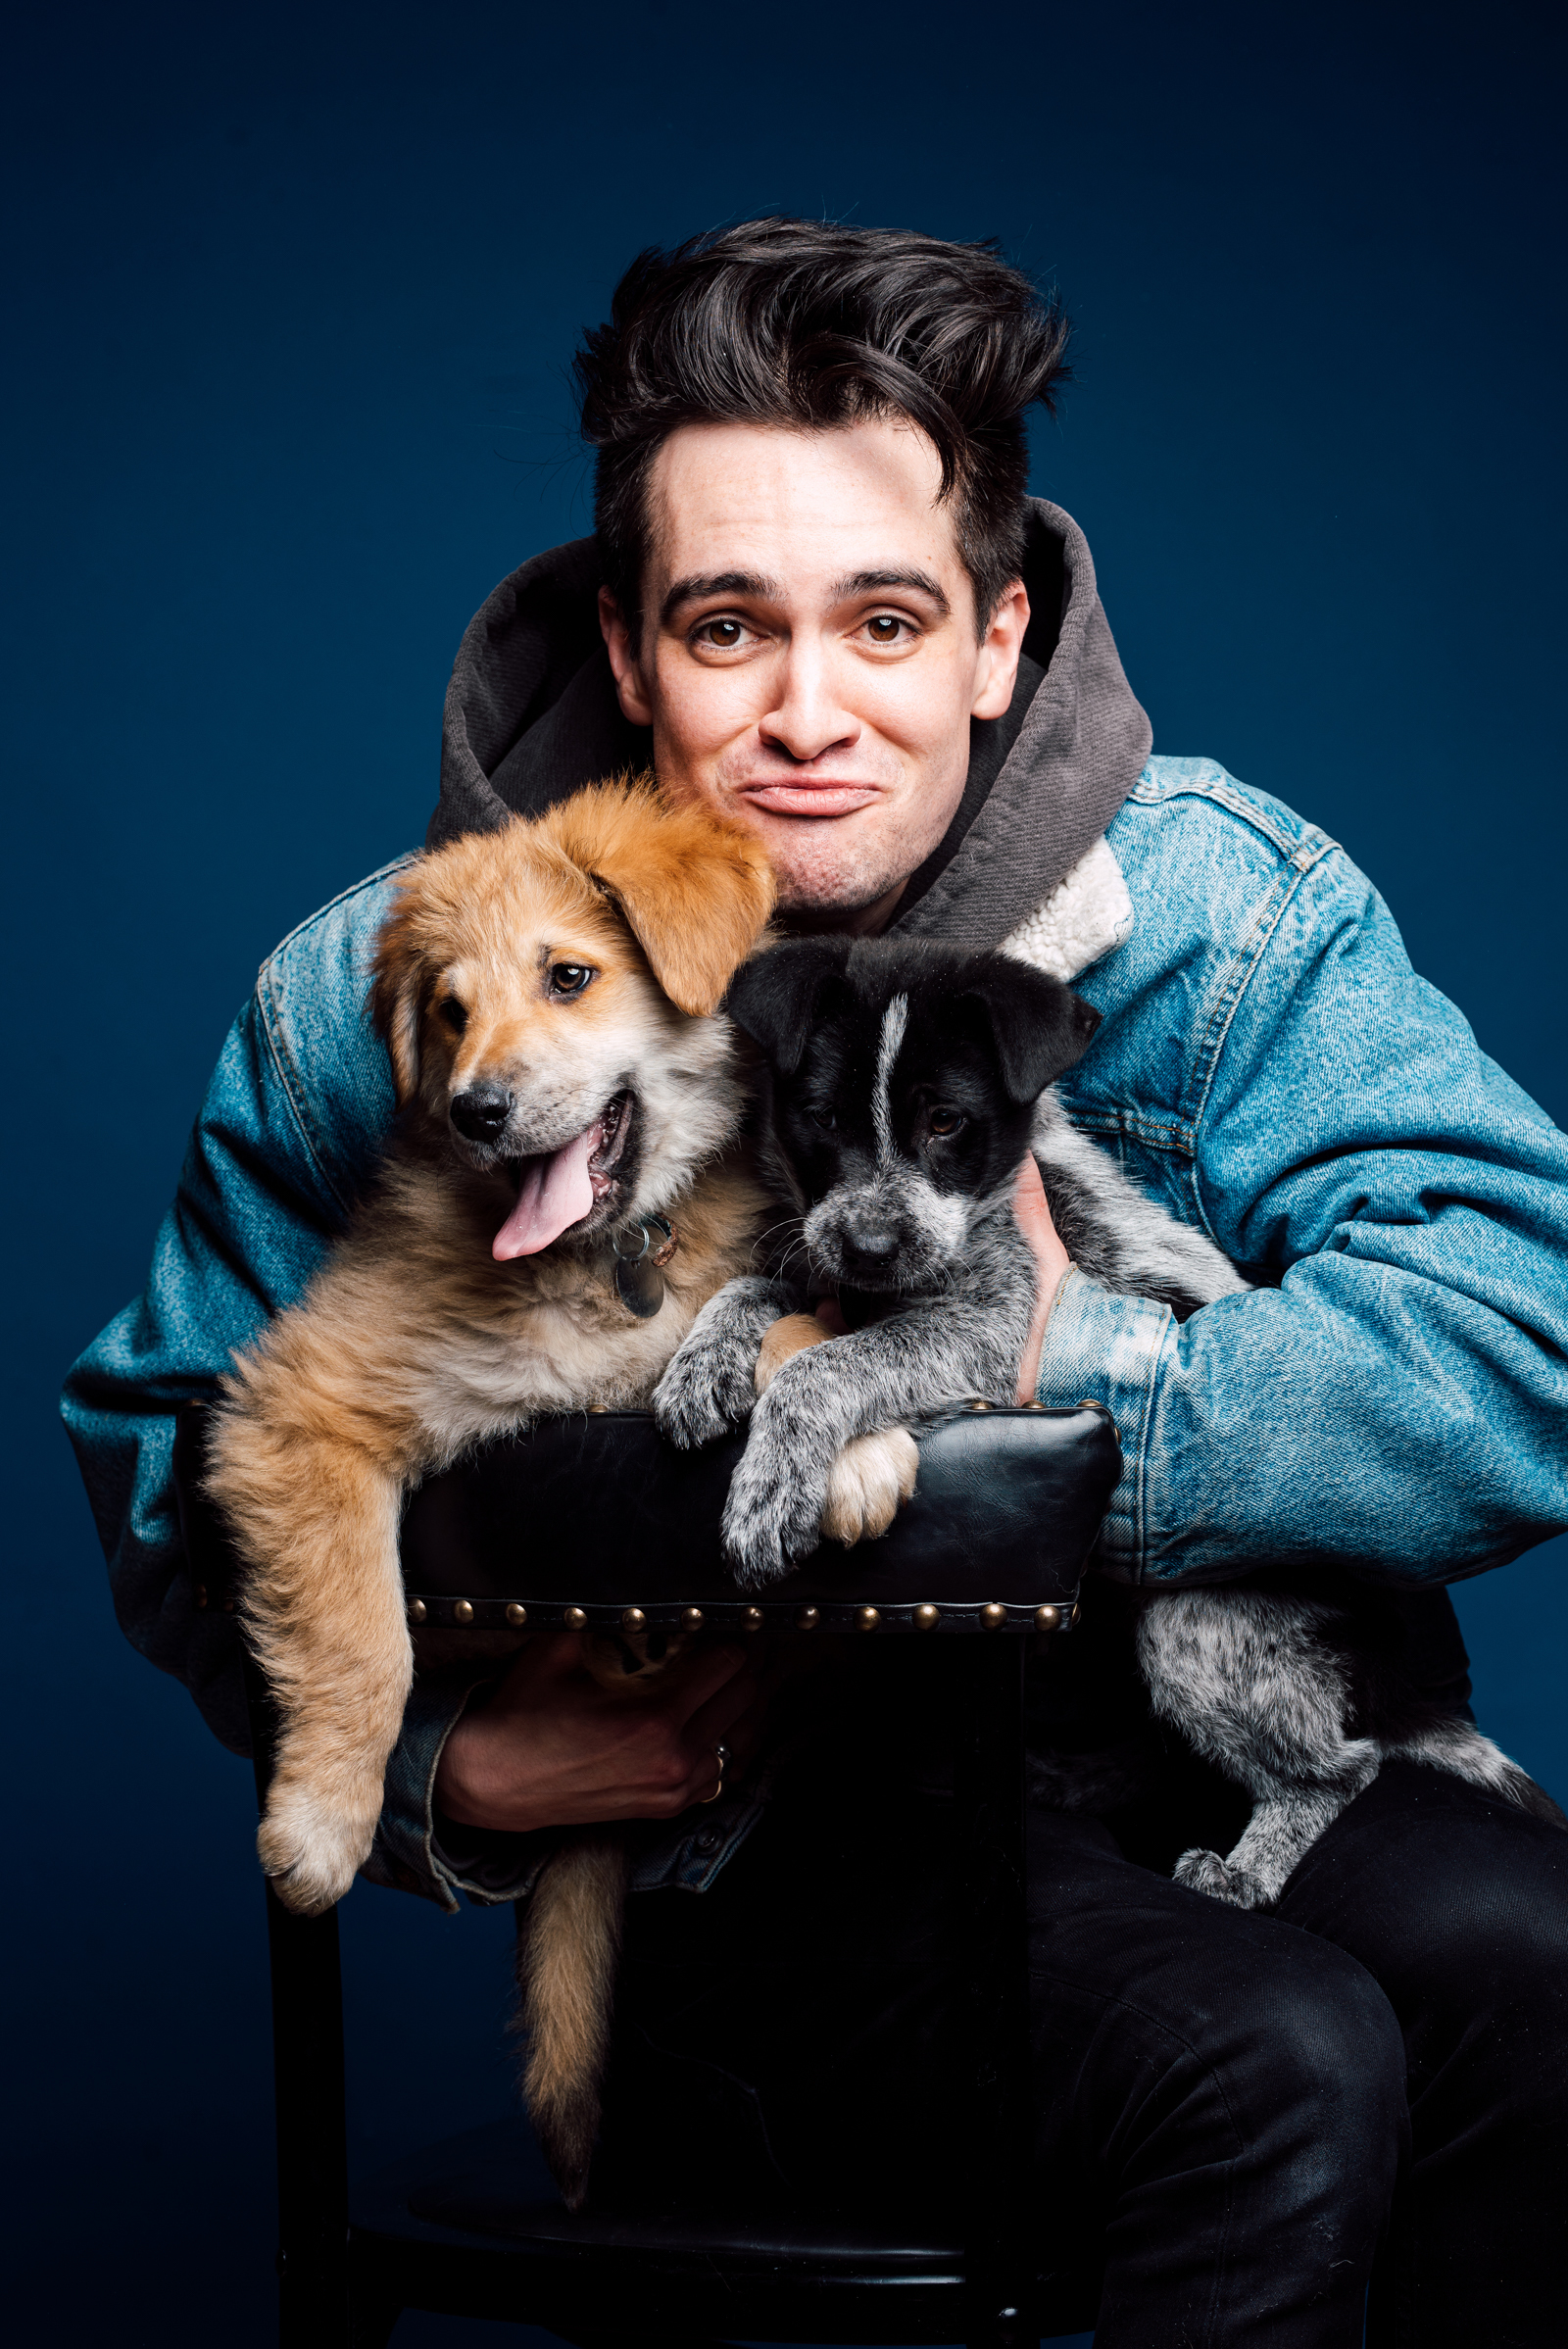 Fall Out Boy And Panic At The Disco Wallpaper Brendon Urie Played With Puppies While Answering Fan